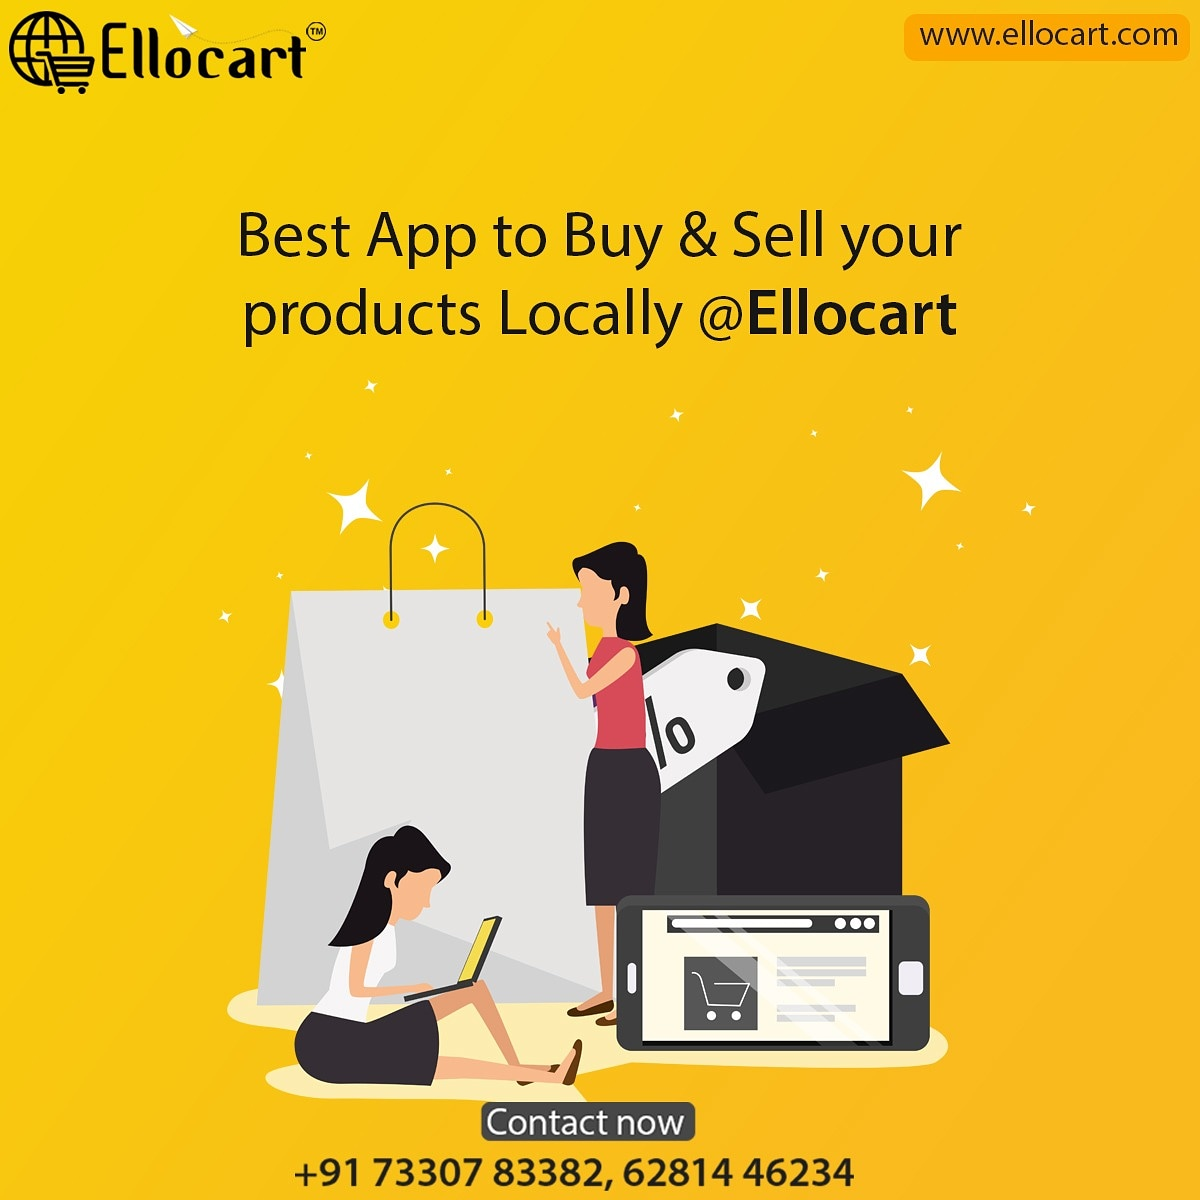 Best App to Buy & Sell your products locally @Ellocart  https://t.co/VODjDsjZa8 Contact Now: 73307 83382, 6281446234 #shopping #localbusiness #localshops #ellocart #neareststores #localstores #supportlocalbusiness #business #LocalProducts #orderonline #easyshopping #takeaway https://t.co/ajzmQ6yuni